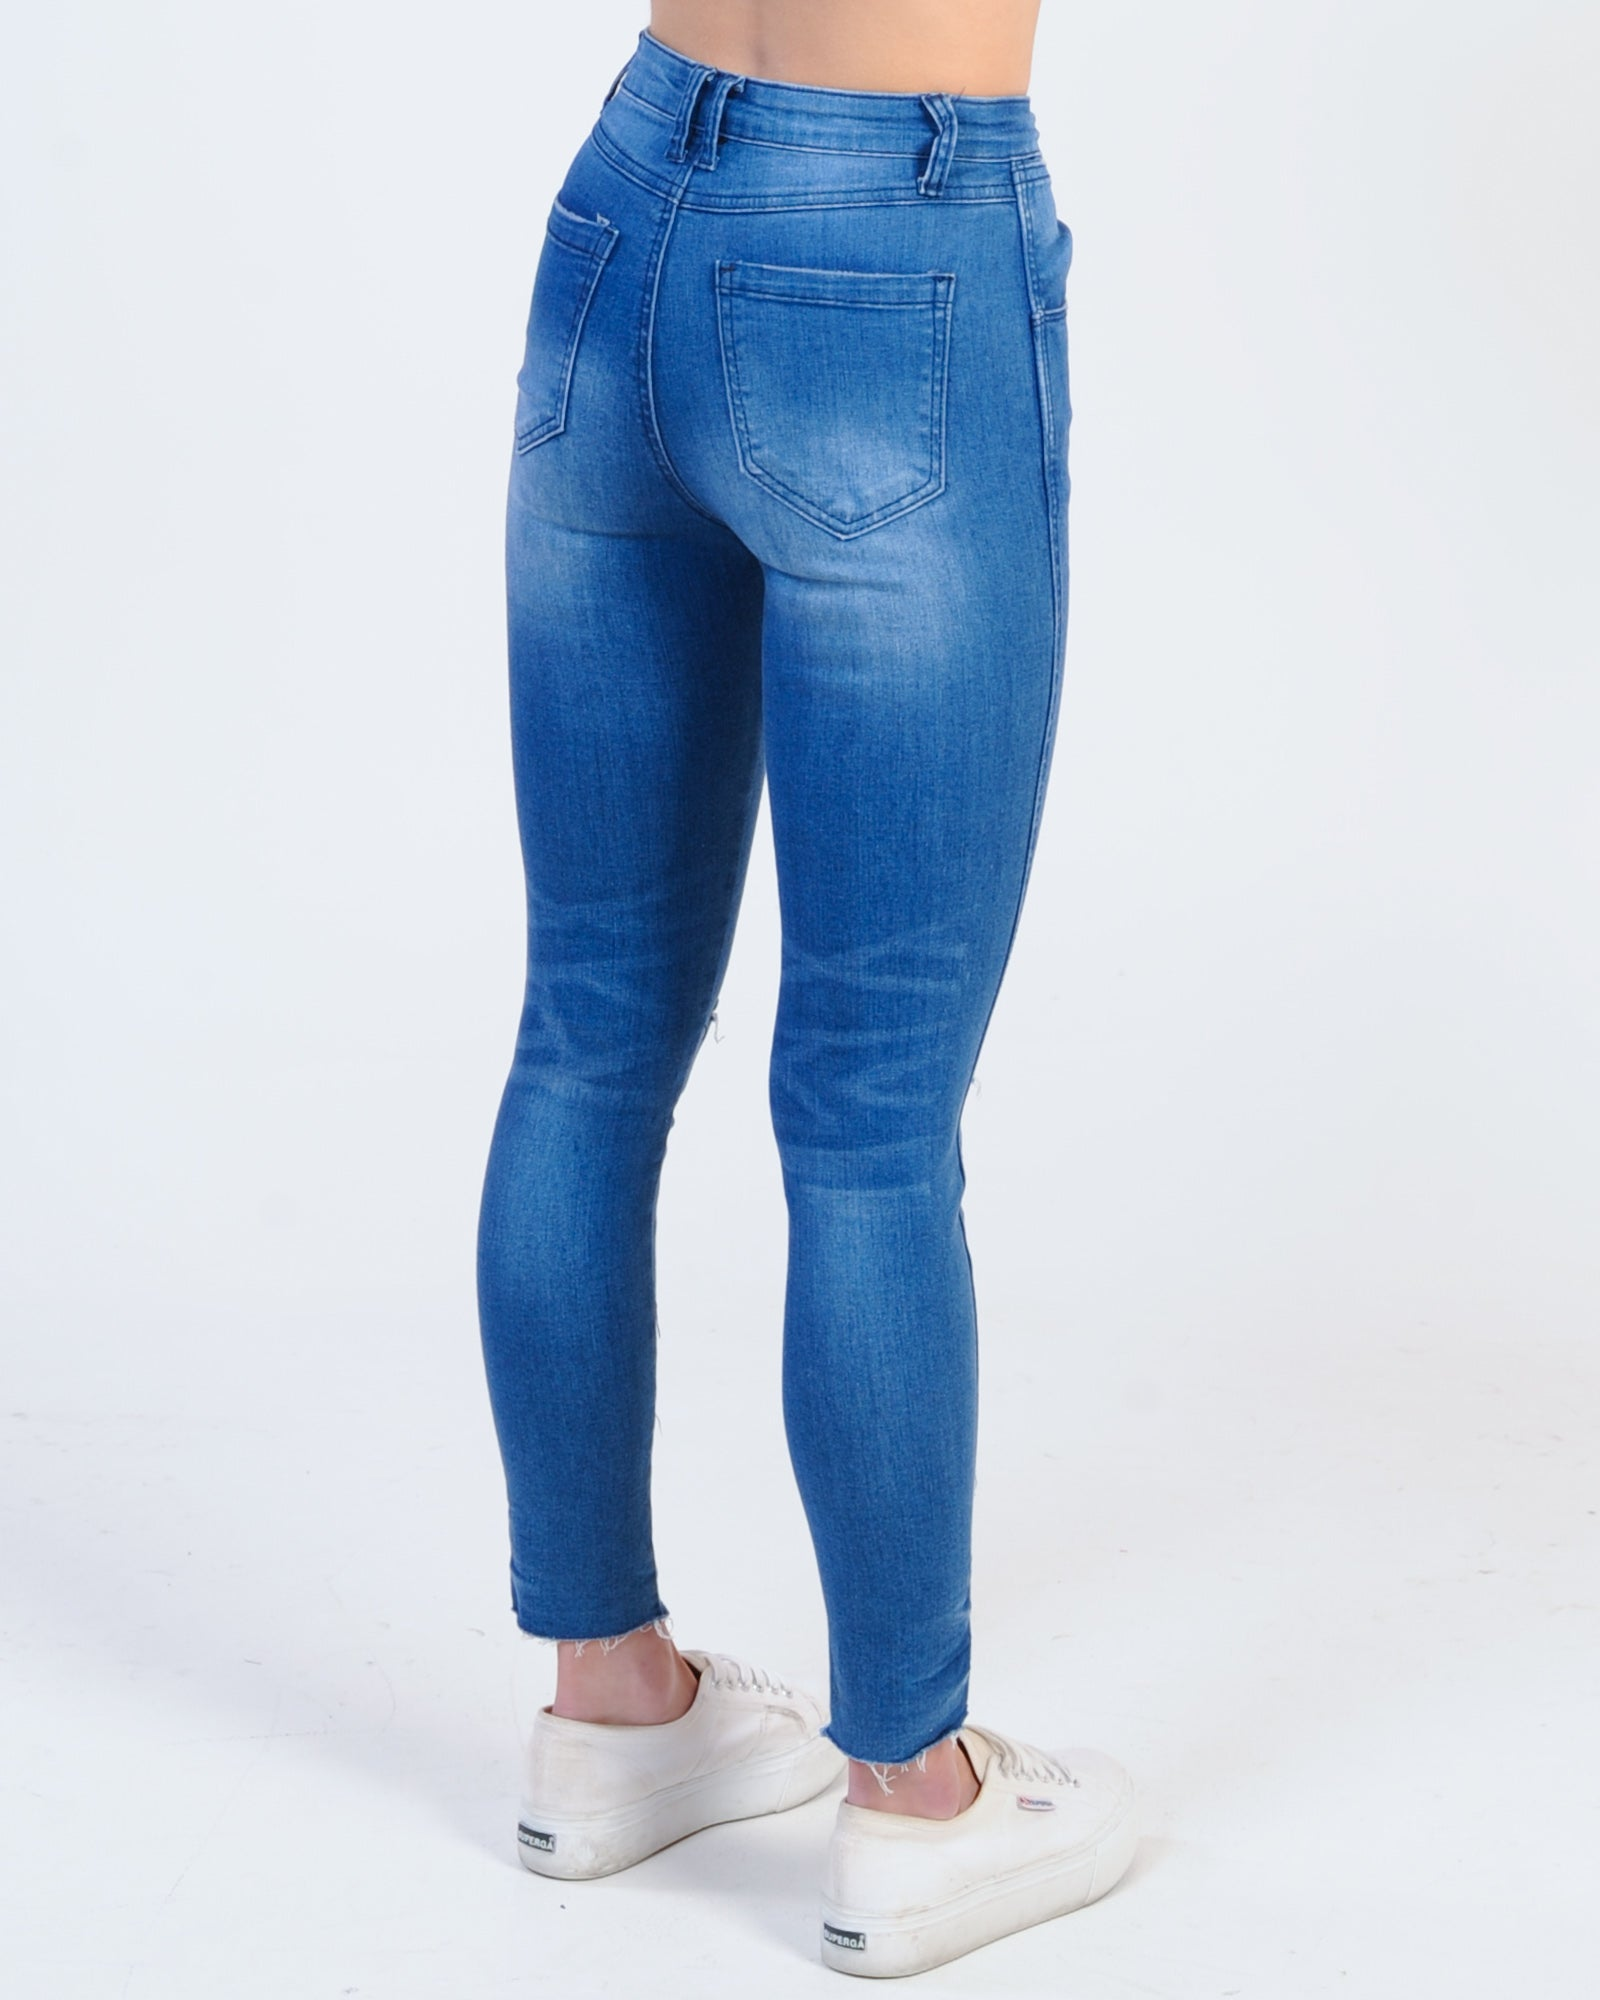 La High Waisted 3/4 Jean - Blue